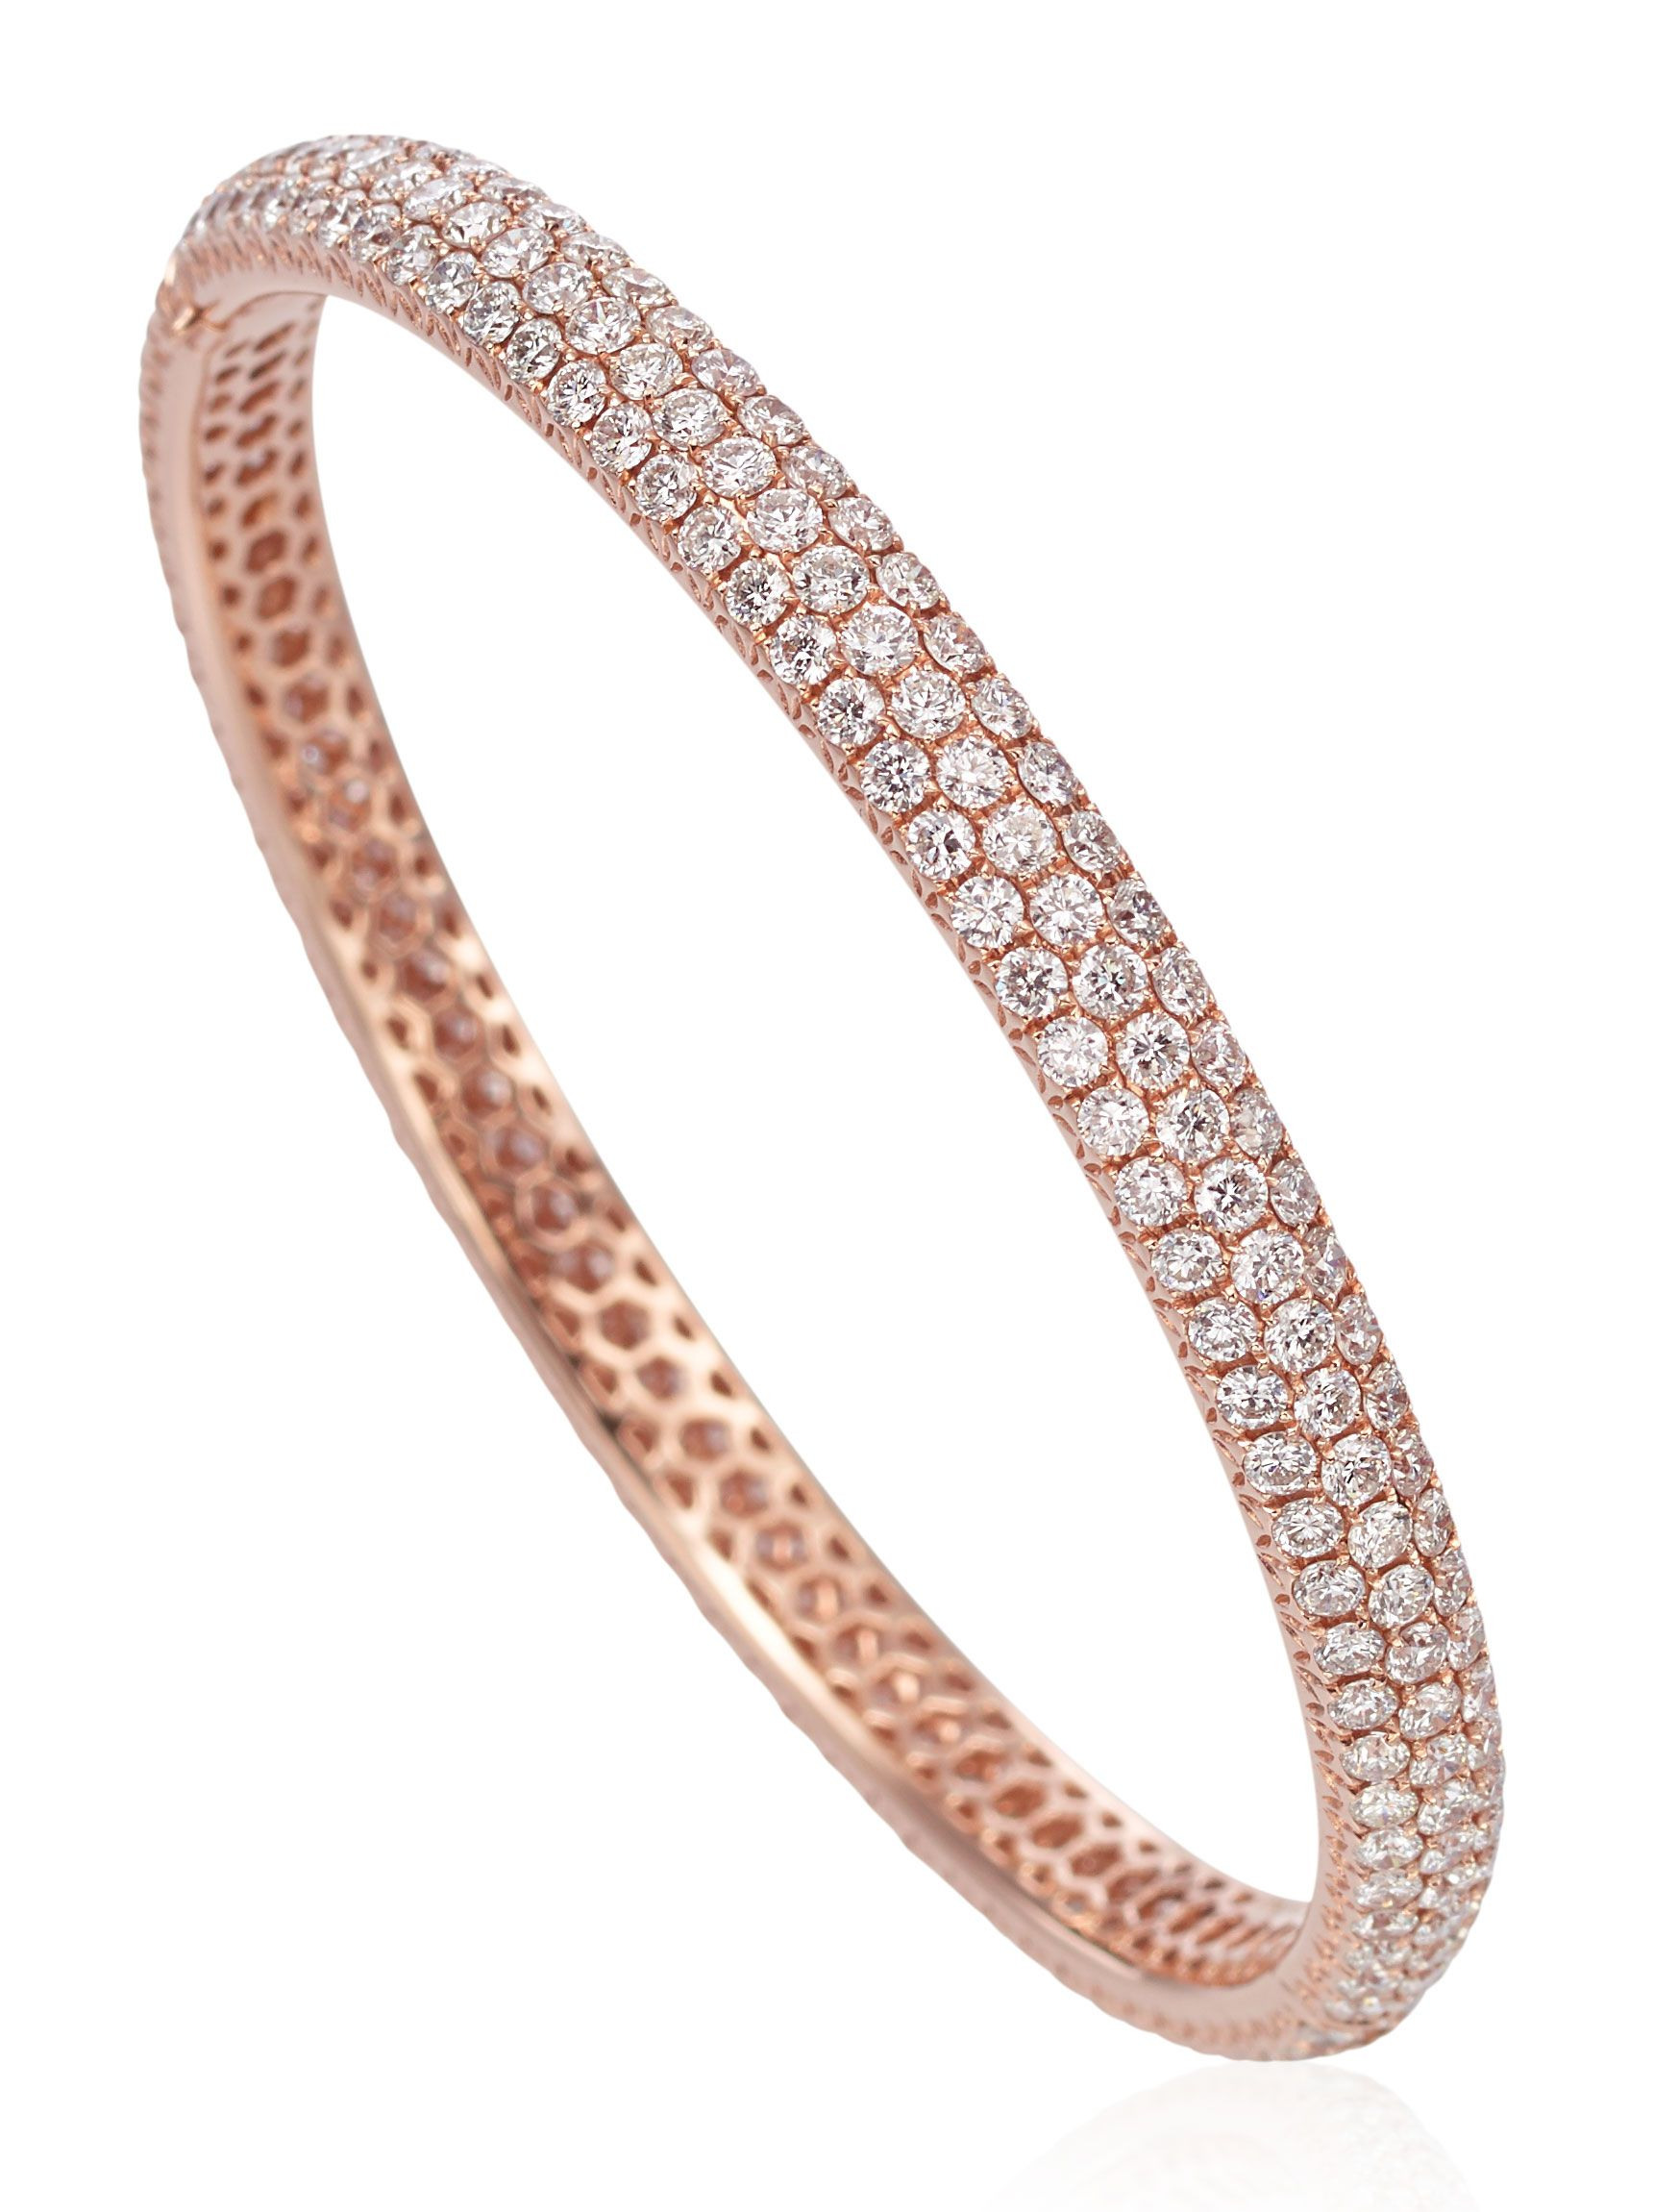 rose braided bracelet bangles bangle london pave diamond gold collection